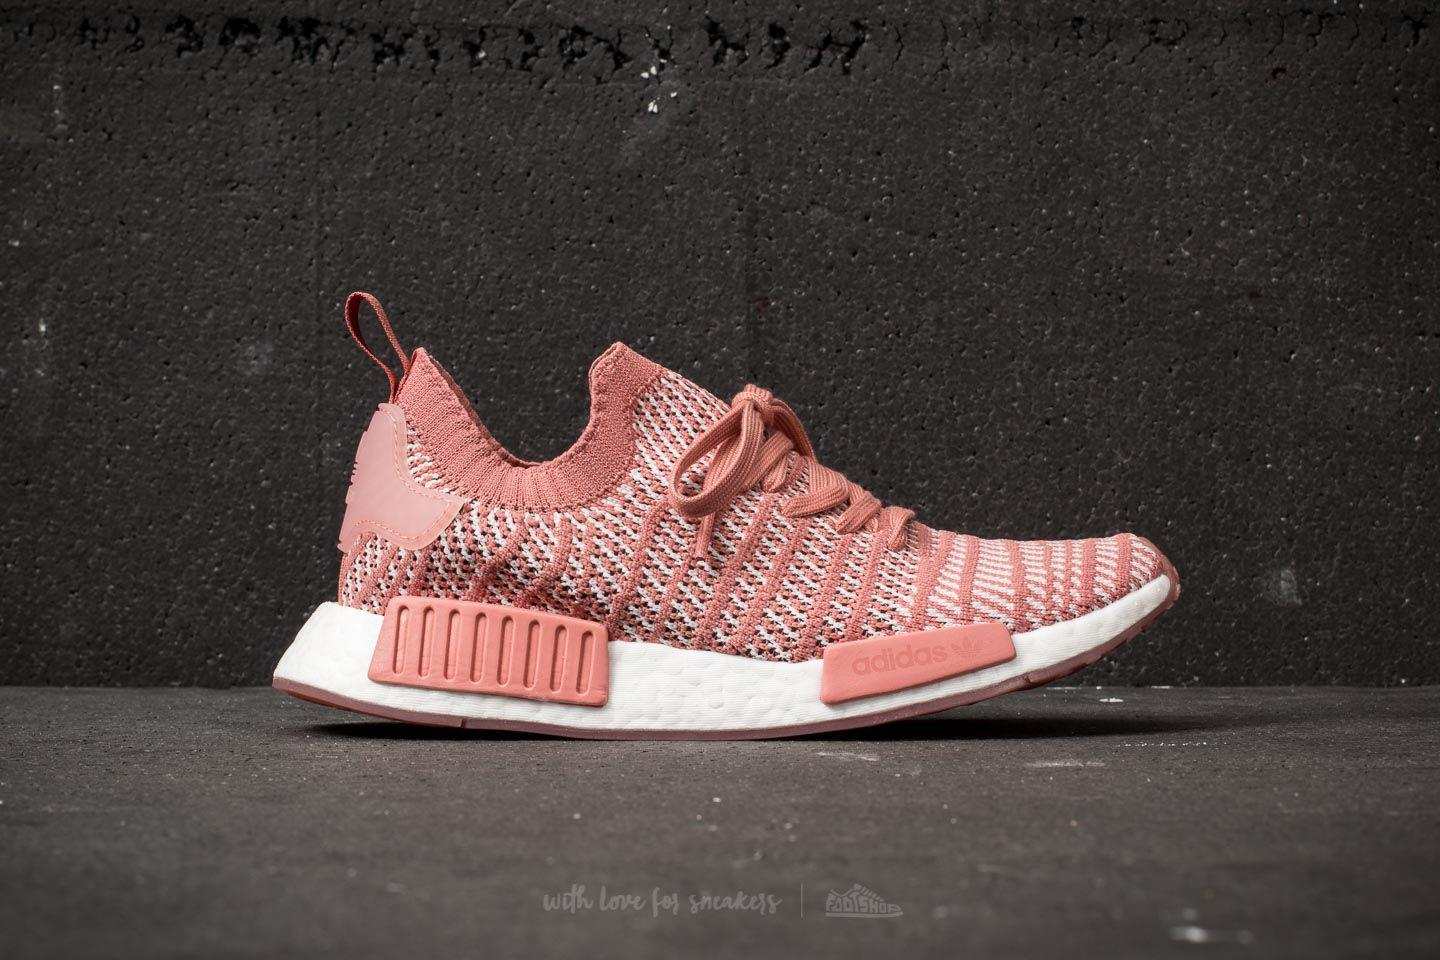 quality design 4124a 2d264 Women's Adidas Nmd_r1 Stlt Primeknit W Ash Pink/ Orchid Tint/ Ftw White